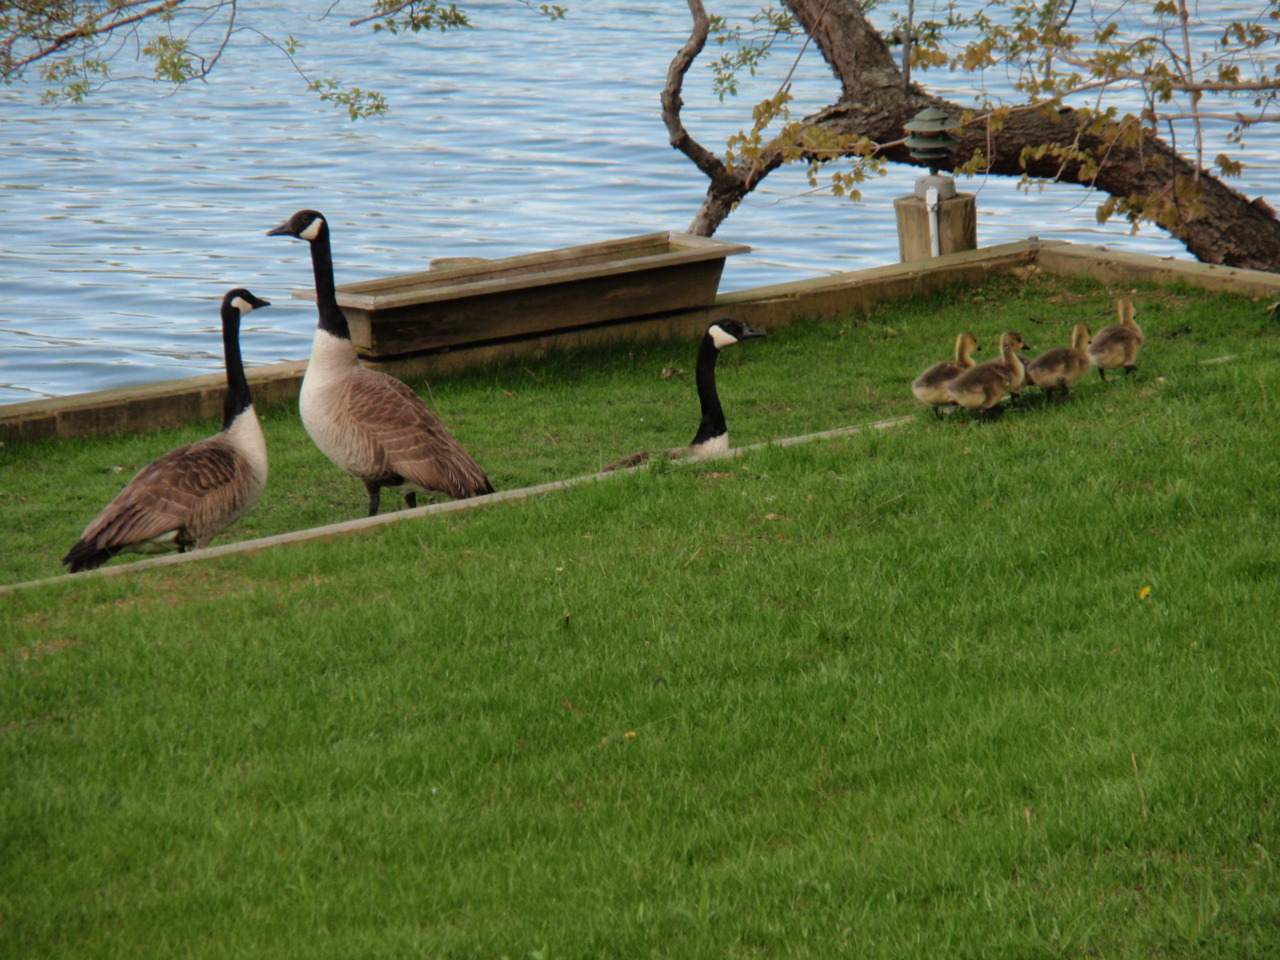 Just received an email from the parents regarding this family of geese which has decided to reside behind my house, along with this photo. Makes me want to head back home from school earlier than I had intended.